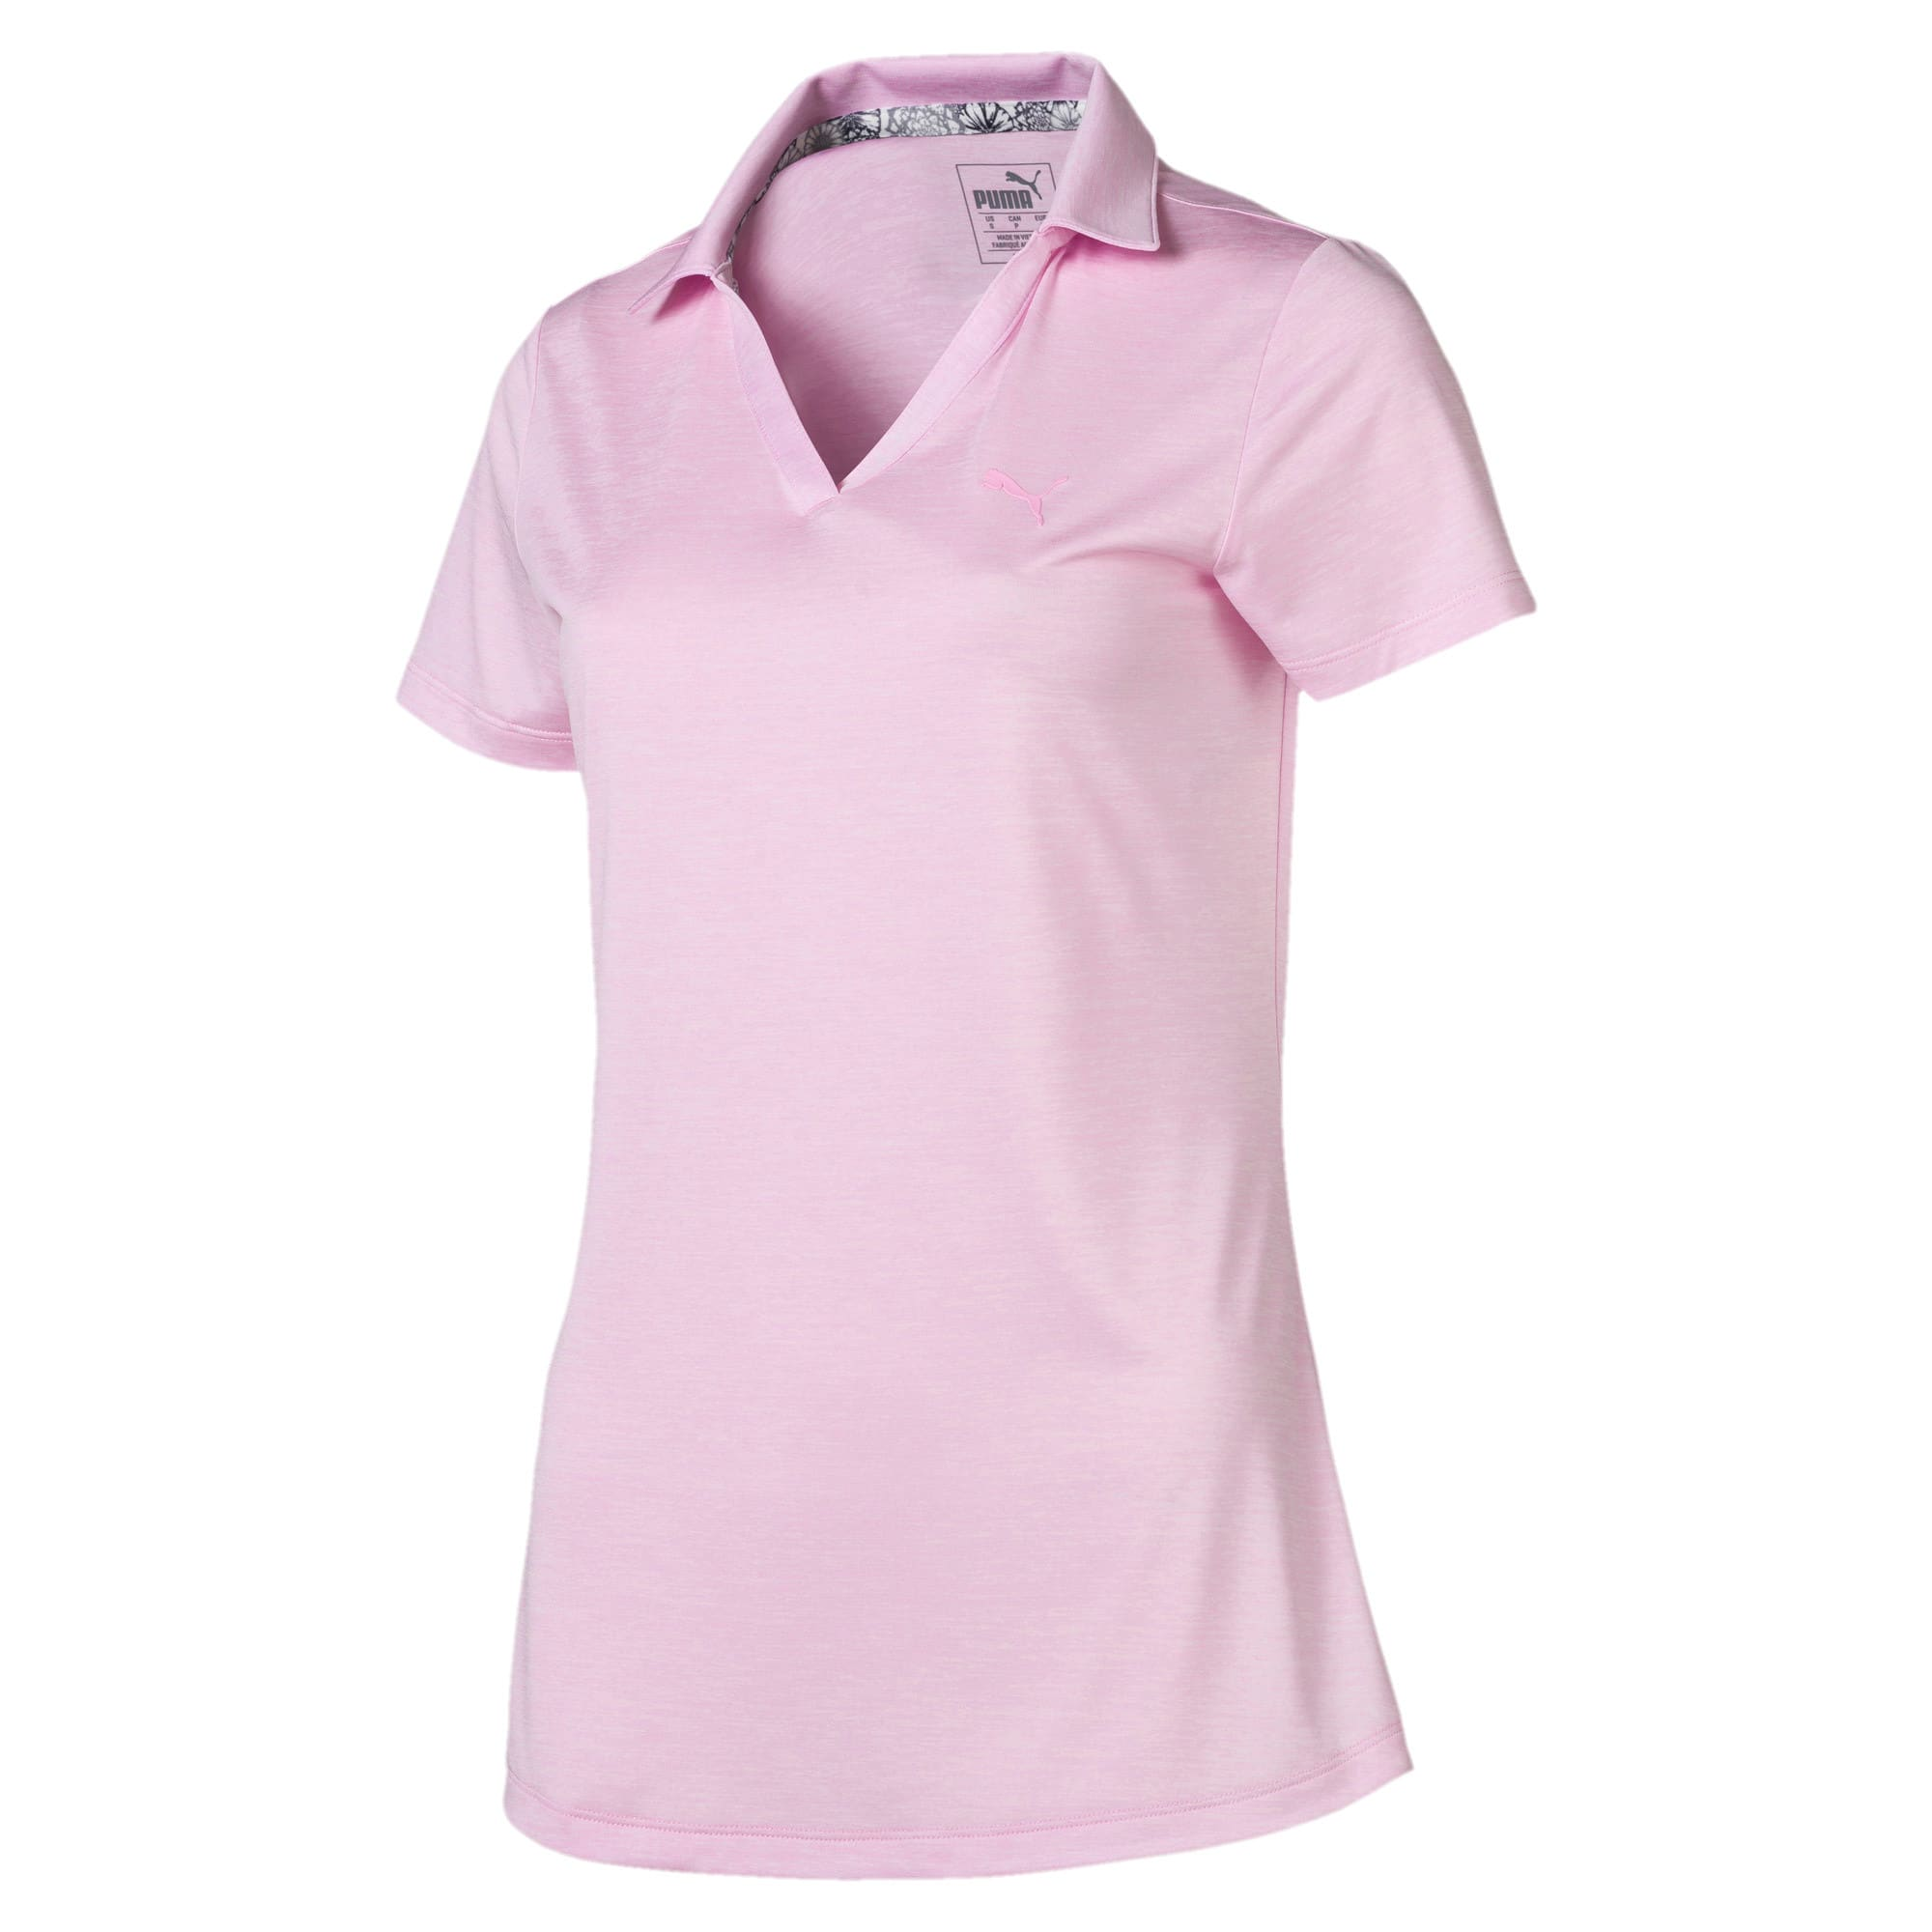 Miniatura 1 de Camiseta tipo polo Super Soft para mujer, Pale Pink Heather, mediano